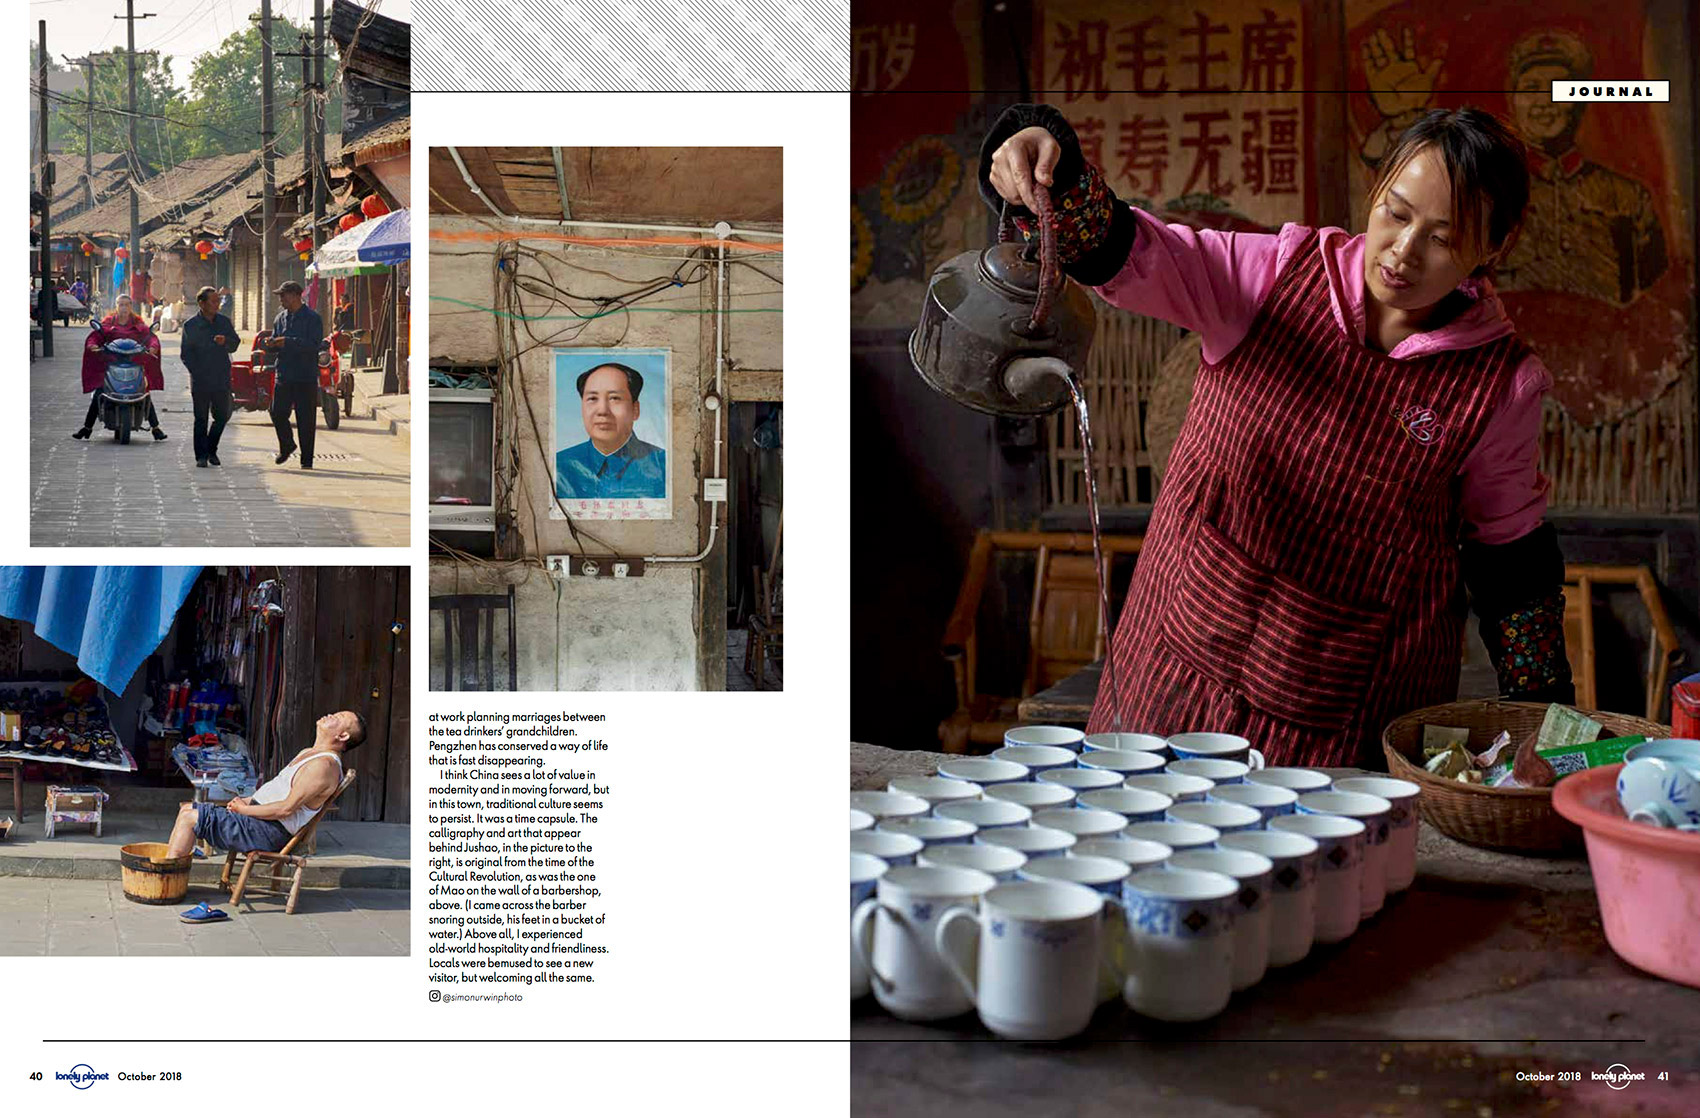 China | Lonely Planet Traveller | Simon Urwin | Published Articles & Photography